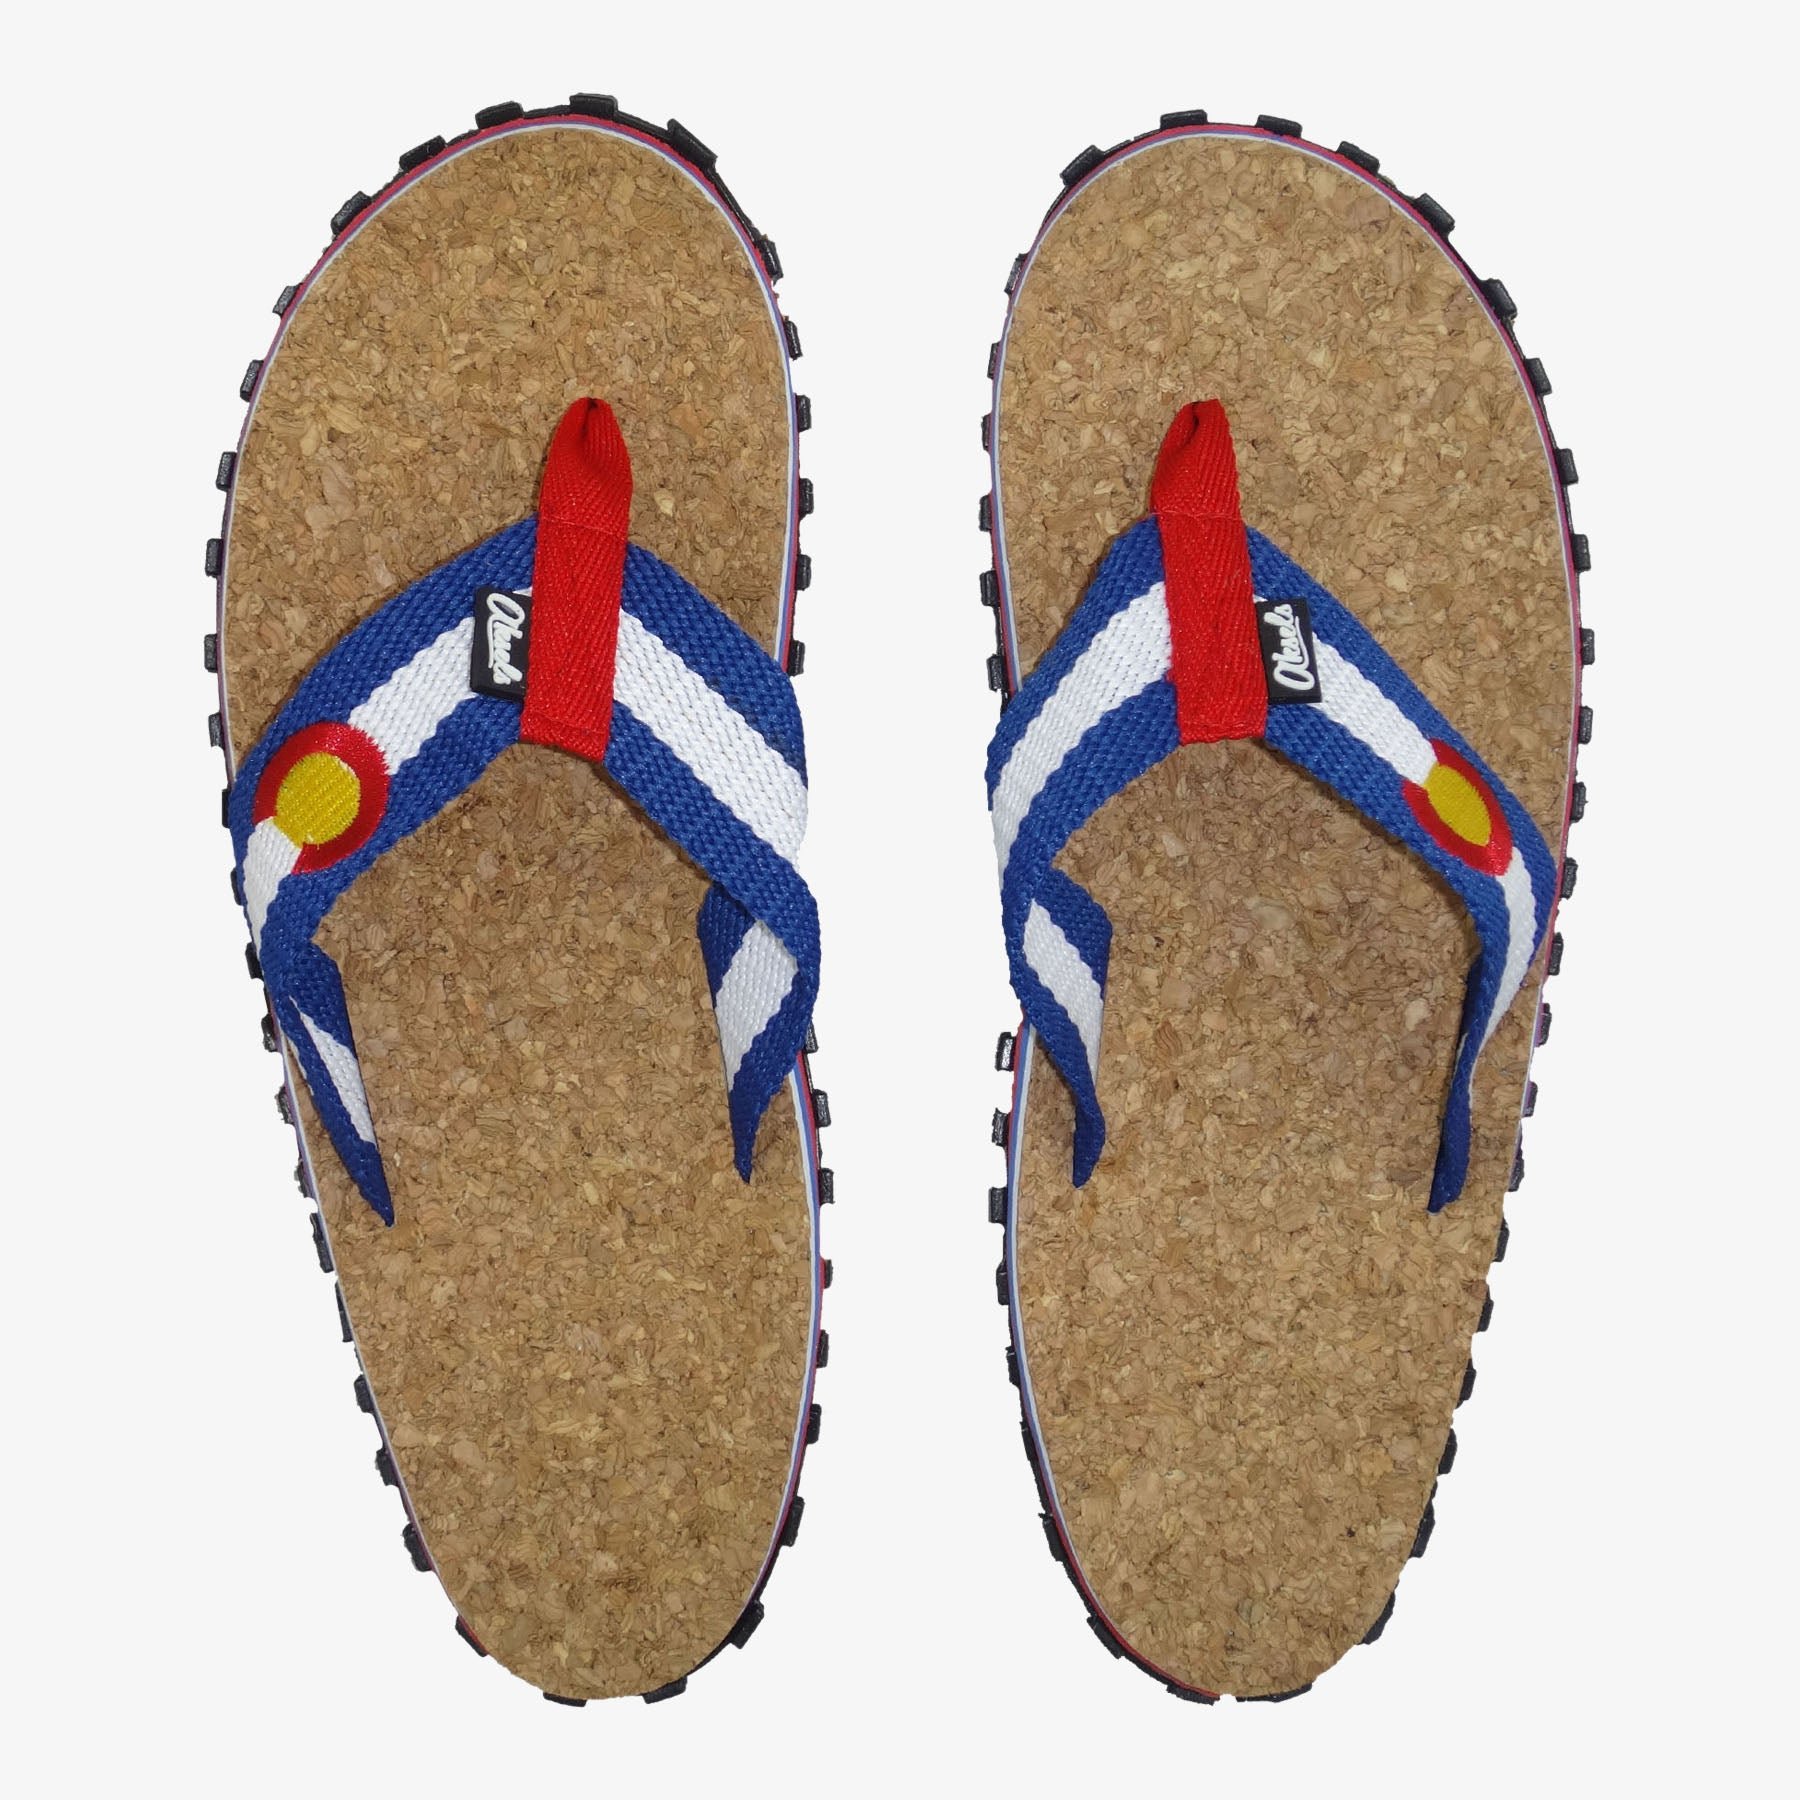 Colorado Cork Sandals